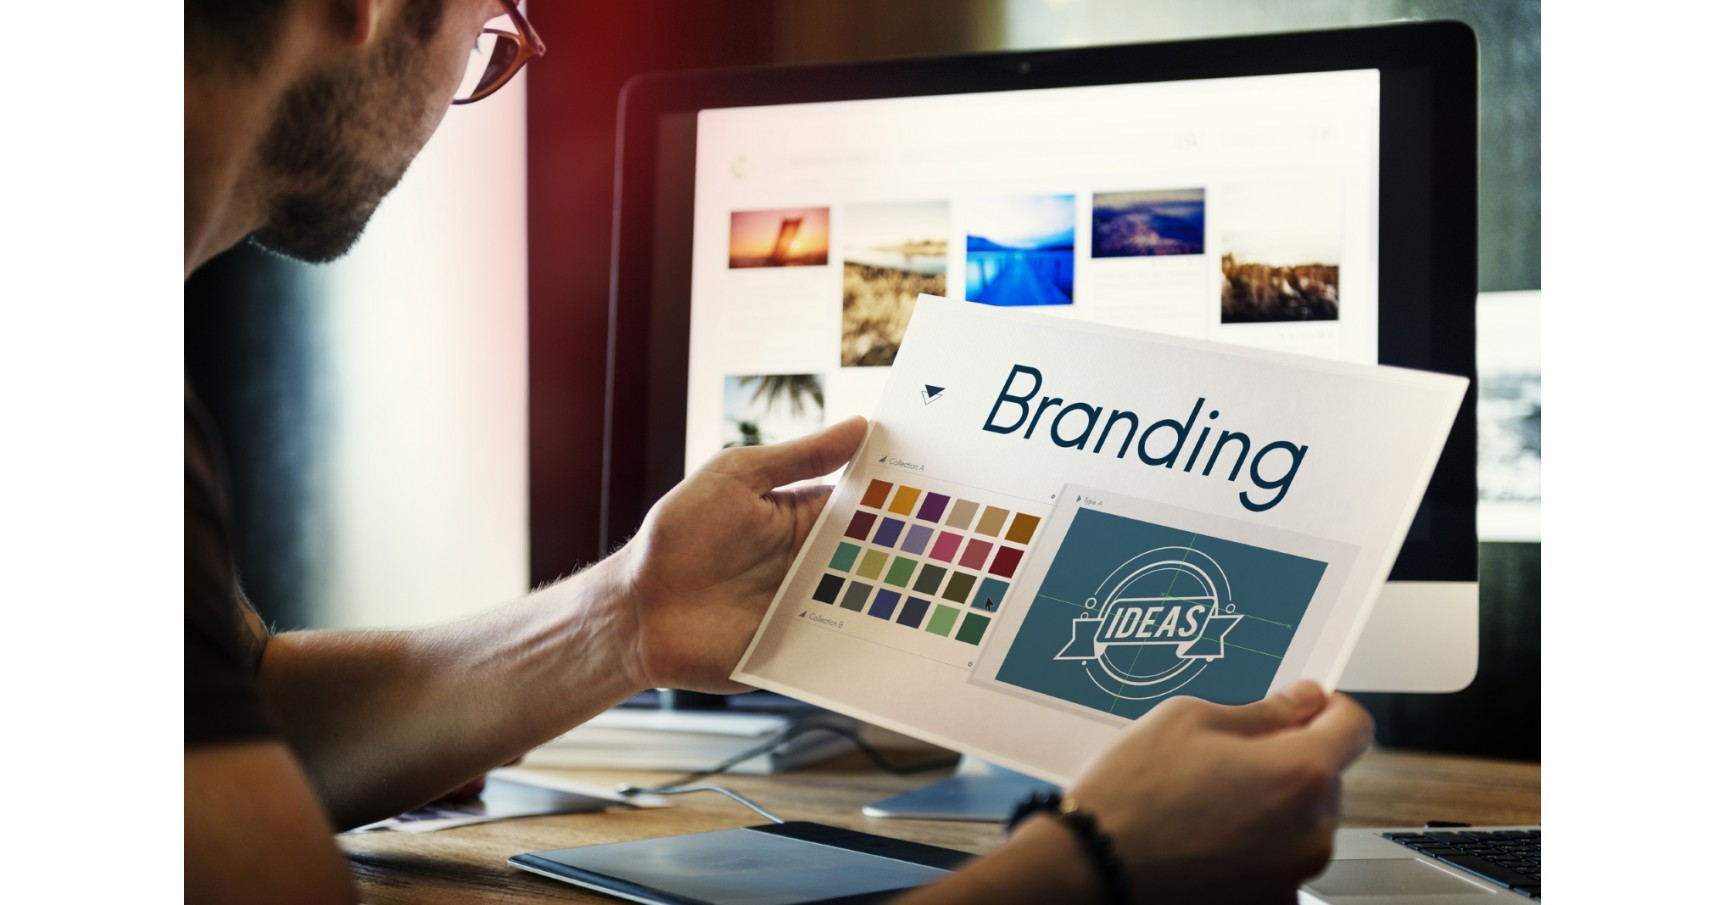 The Science of Branding: What Makes a Good Company Logo?